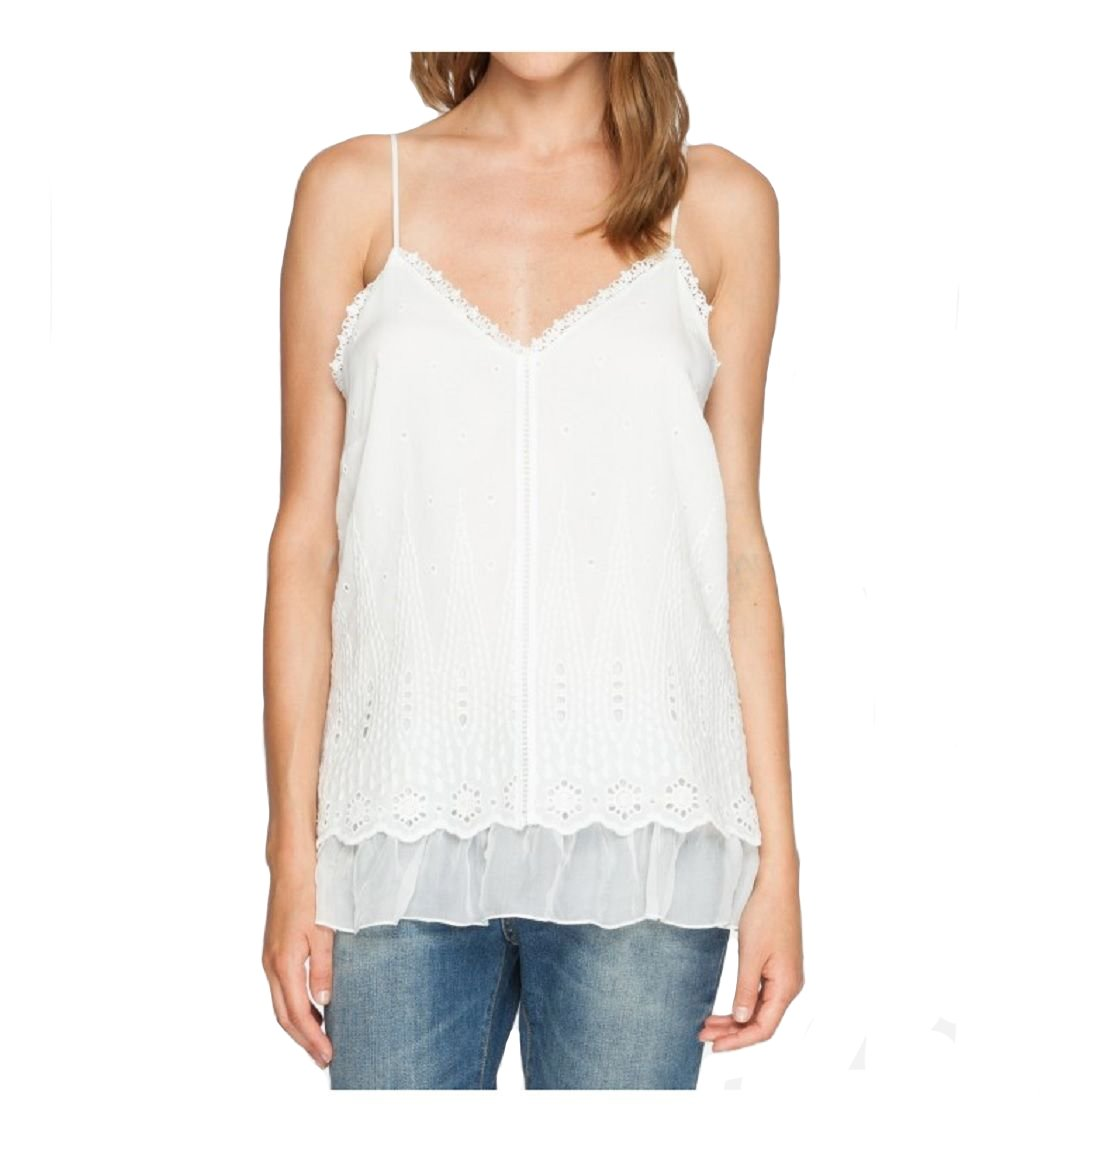 Love and Liberty By Johnny Was Summer Blossom Cami - 1870LL (Large, White)